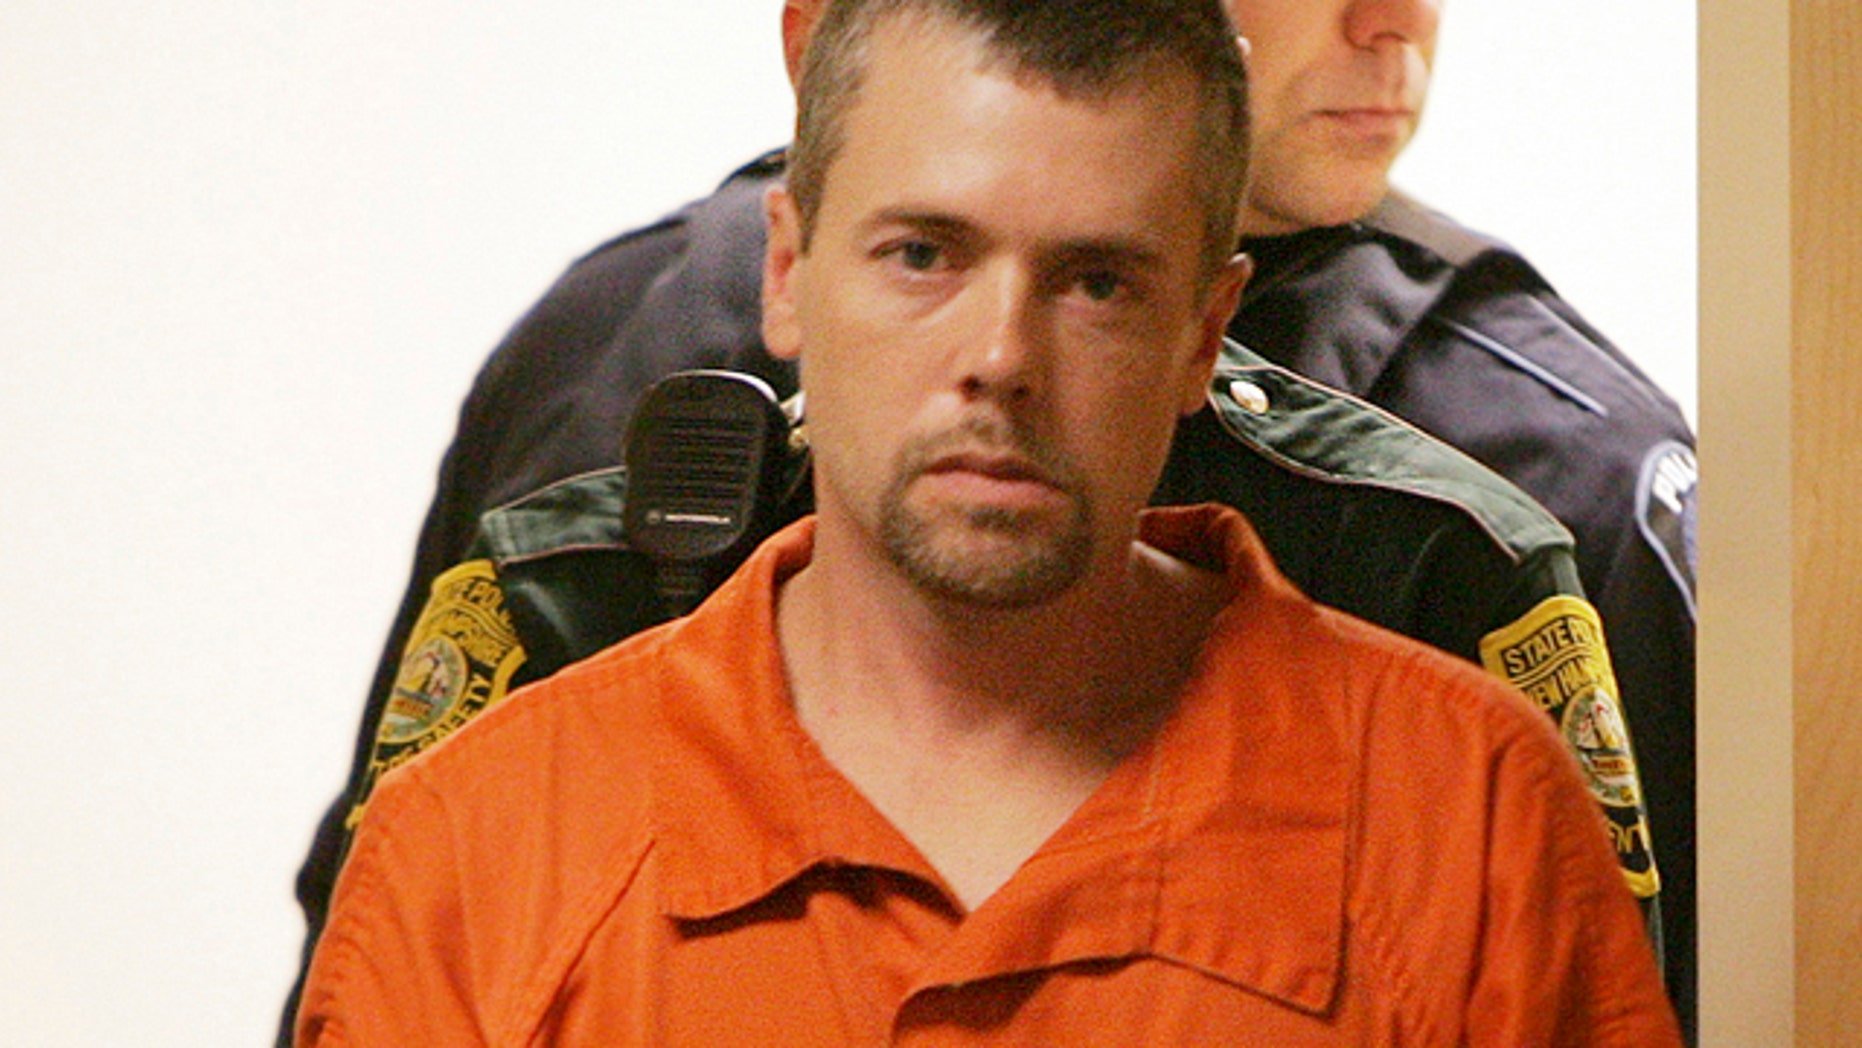 Nov. 10, 2010: Christopher Smeltzer arrives for arraignment in District Court in Candia, N.H.